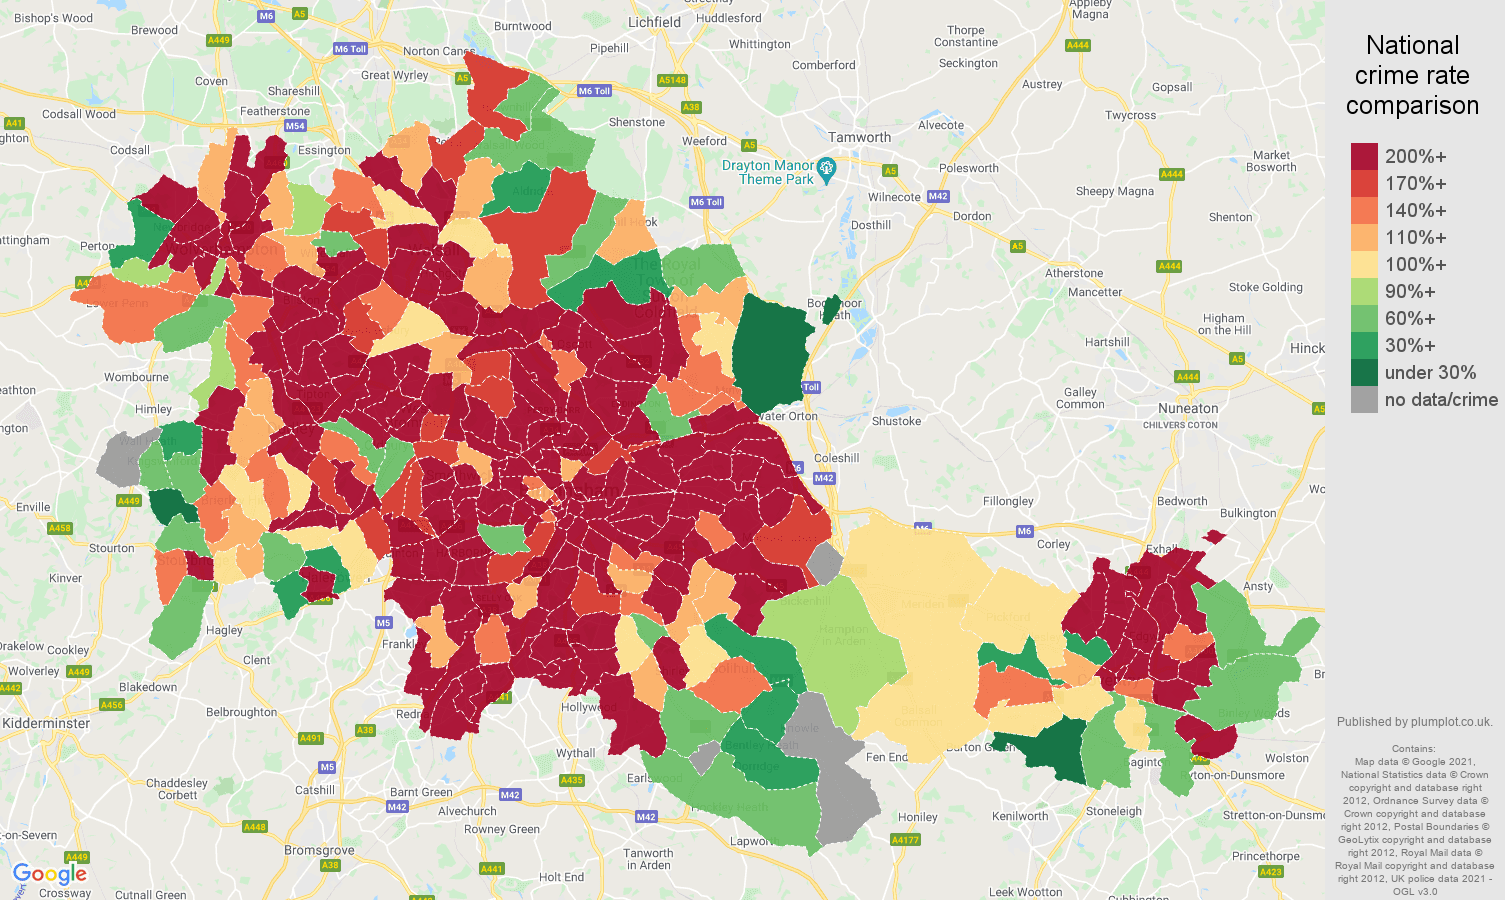 West Midlands county robbery crime rate comparison map